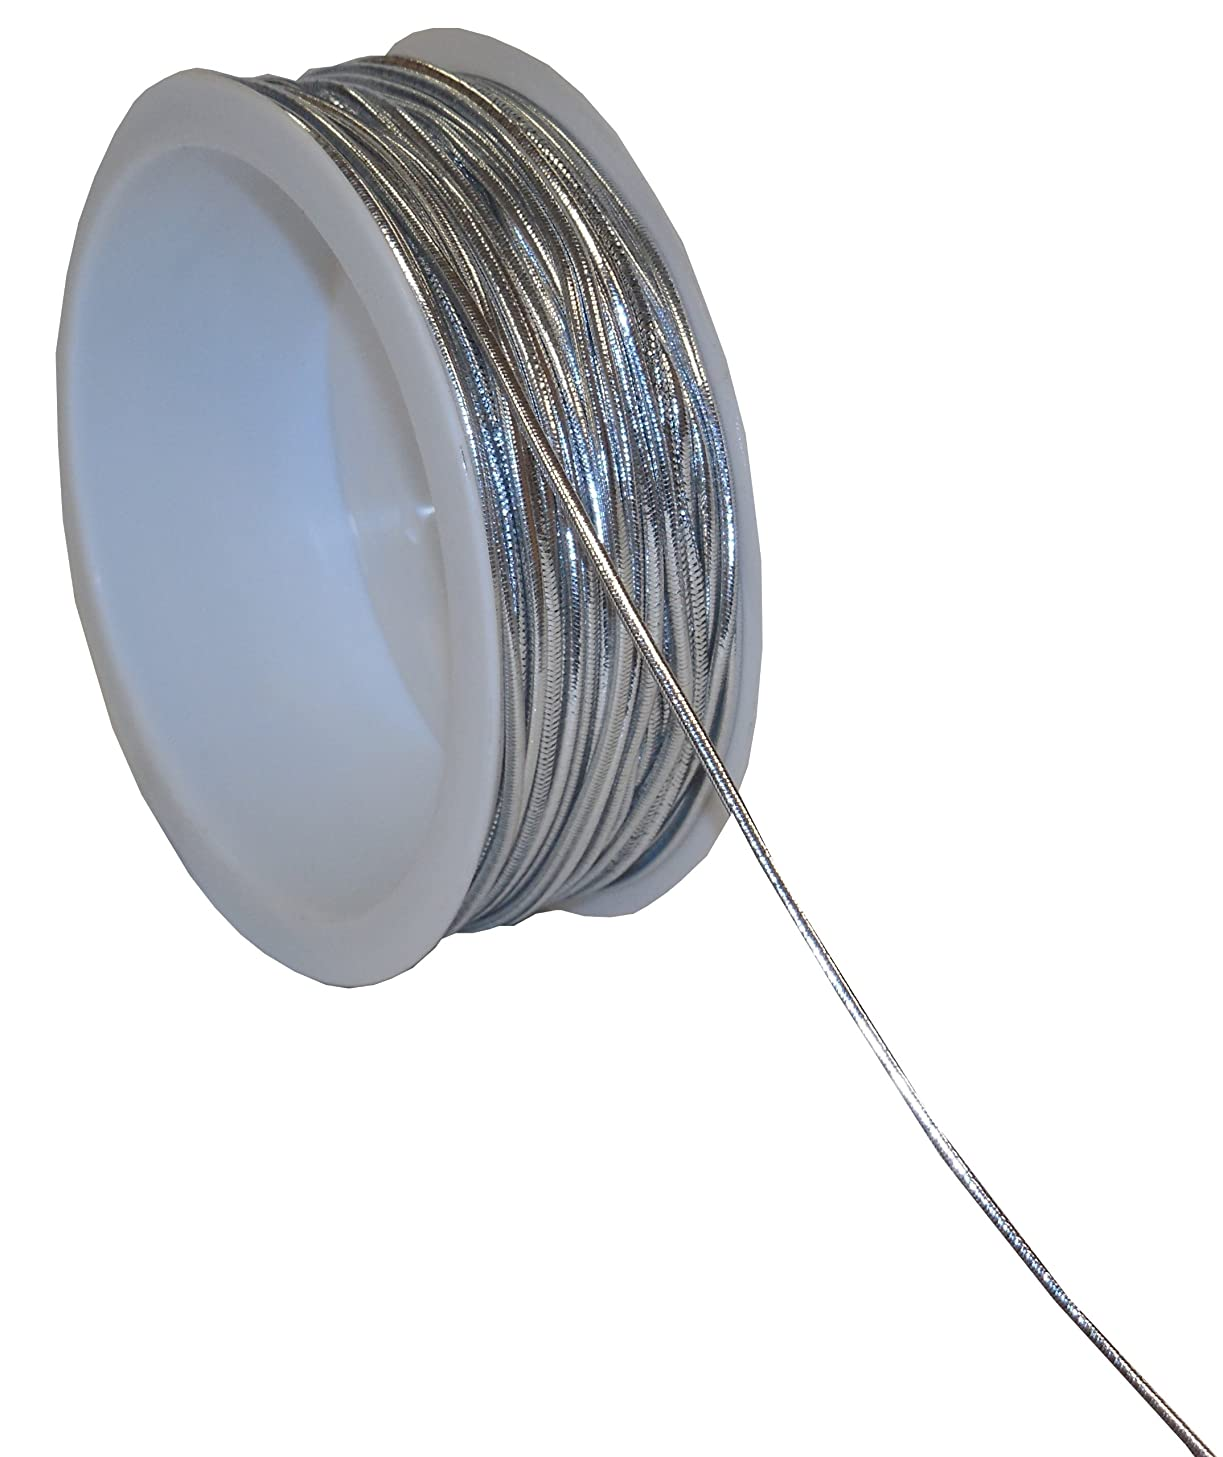 The Gift Wrap Company 25-Foot Elastic Tinsel Cord, Silver (16076-02)